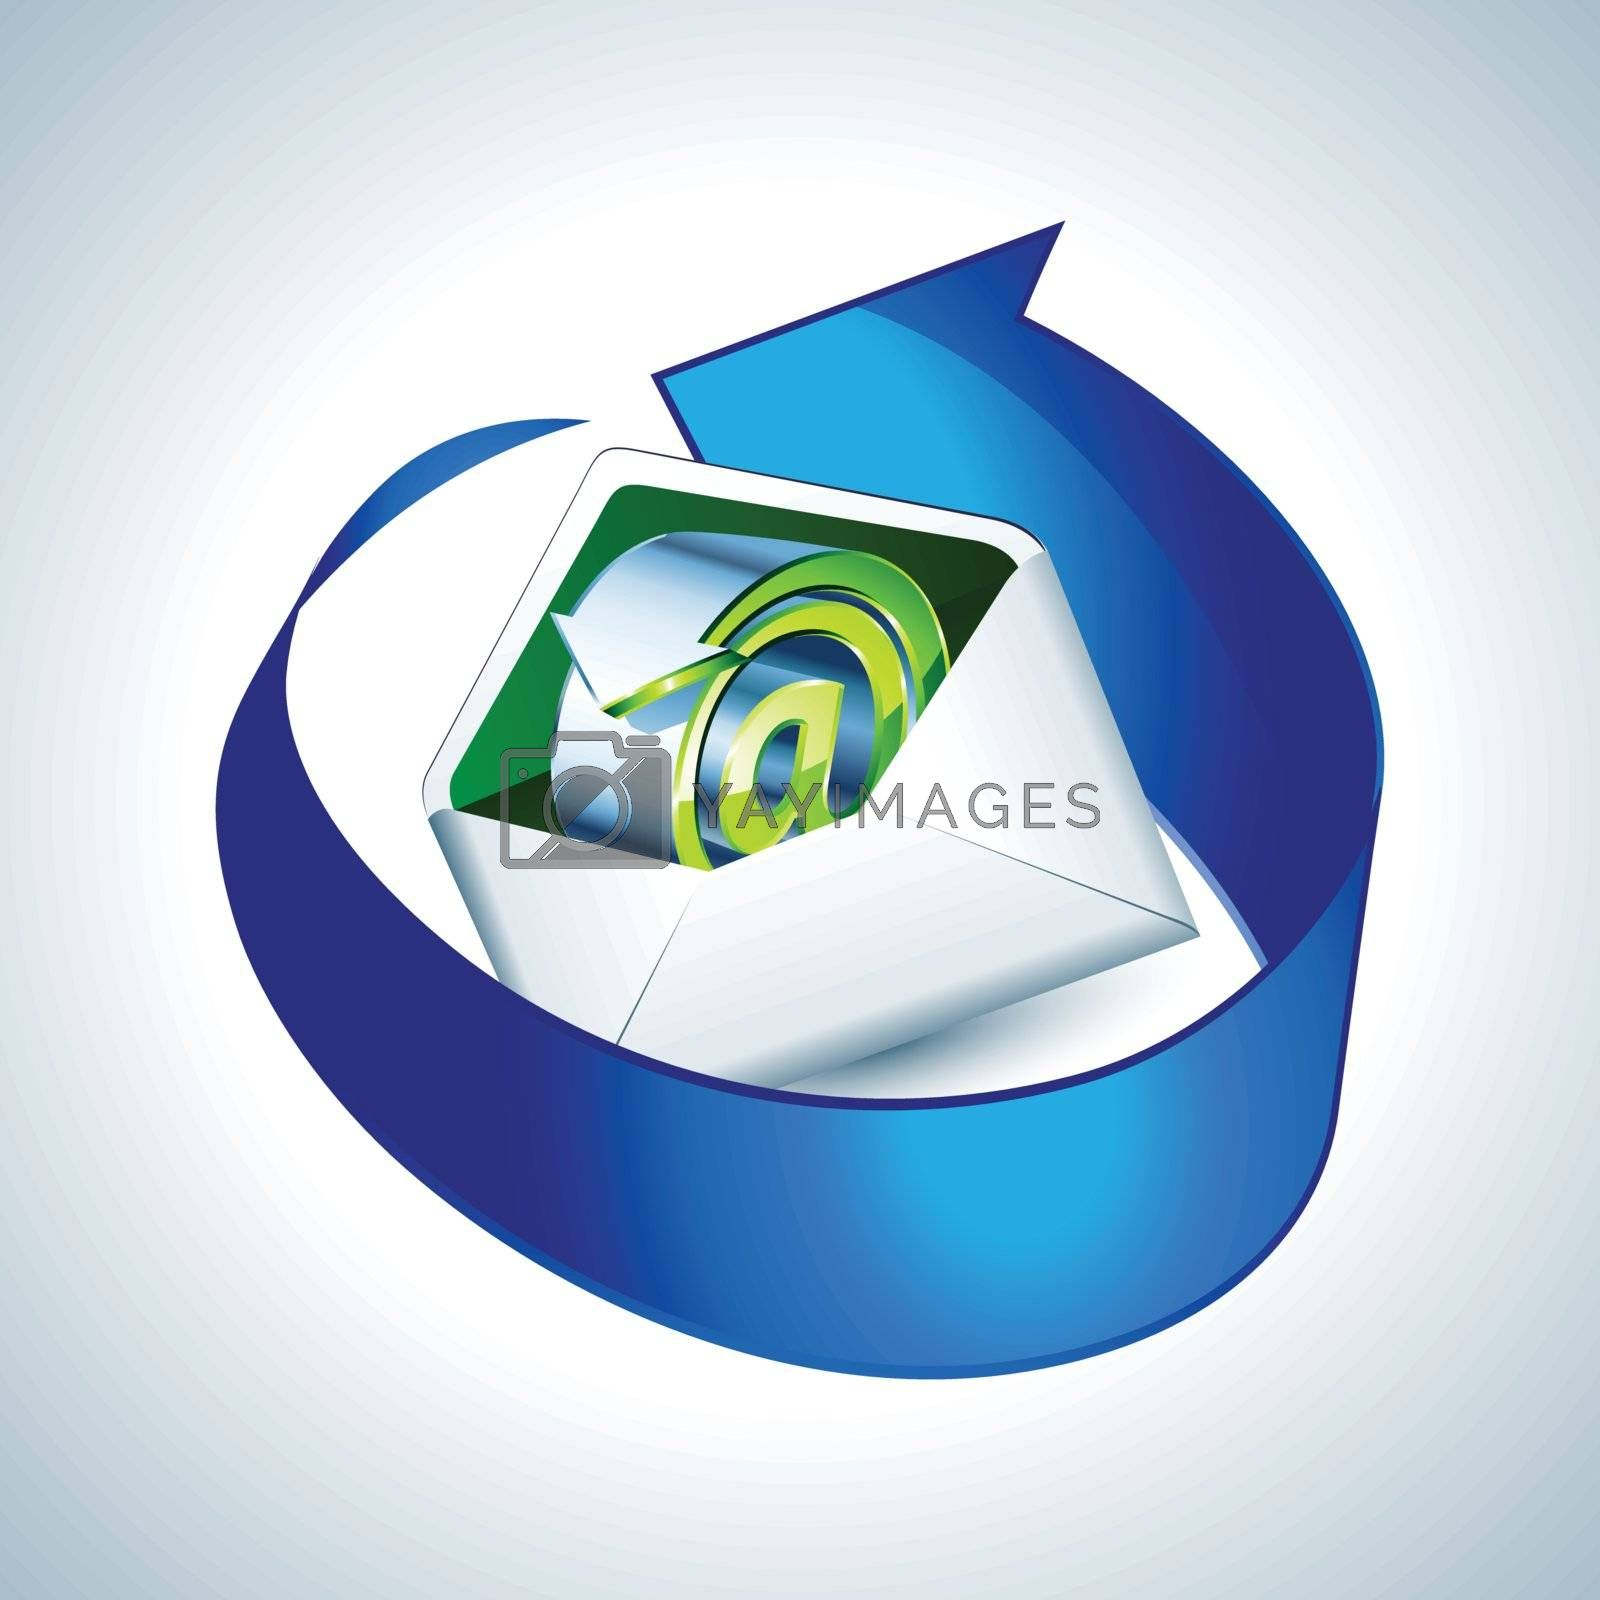 Royalty free image of E-mail icon with blue arrow by nirots